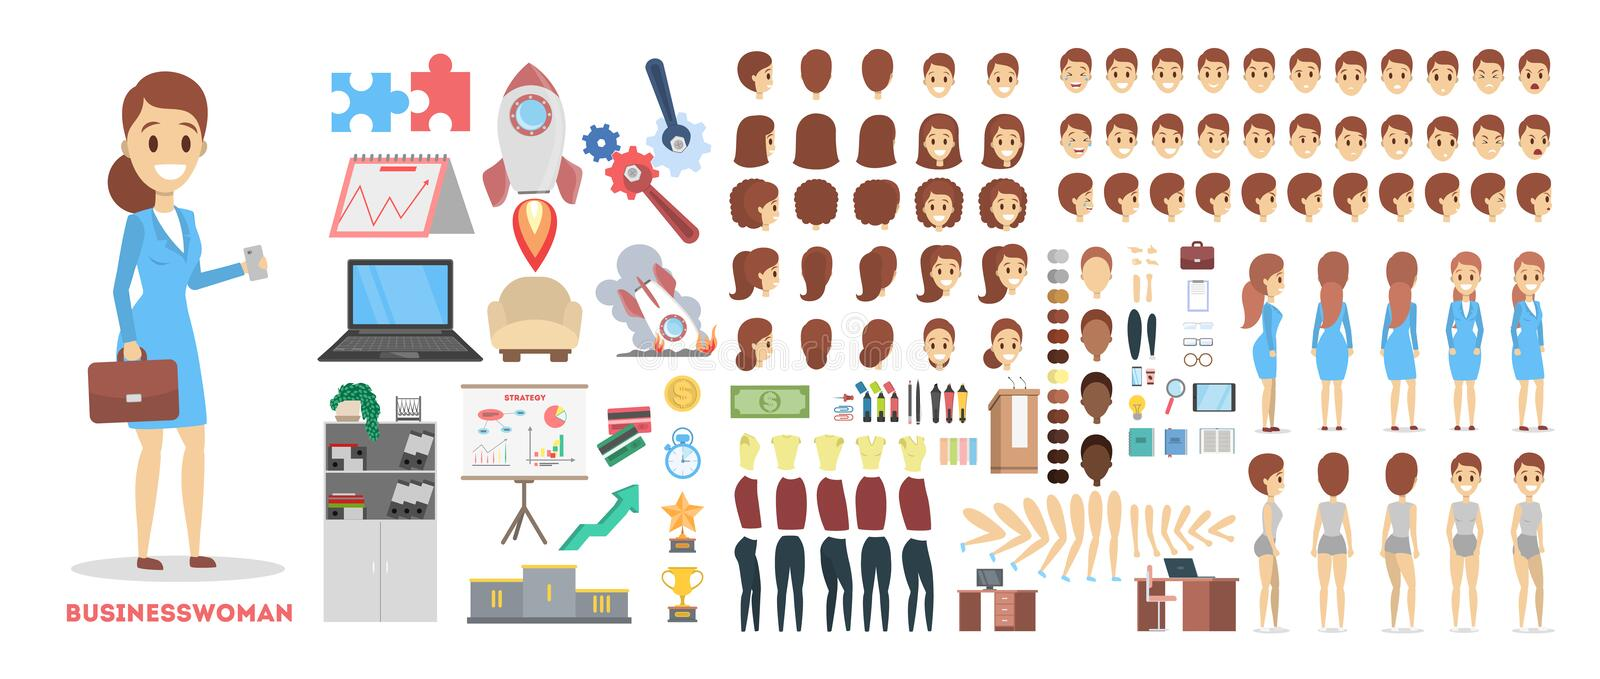 Business woman character set for the animation with various views stock illustration